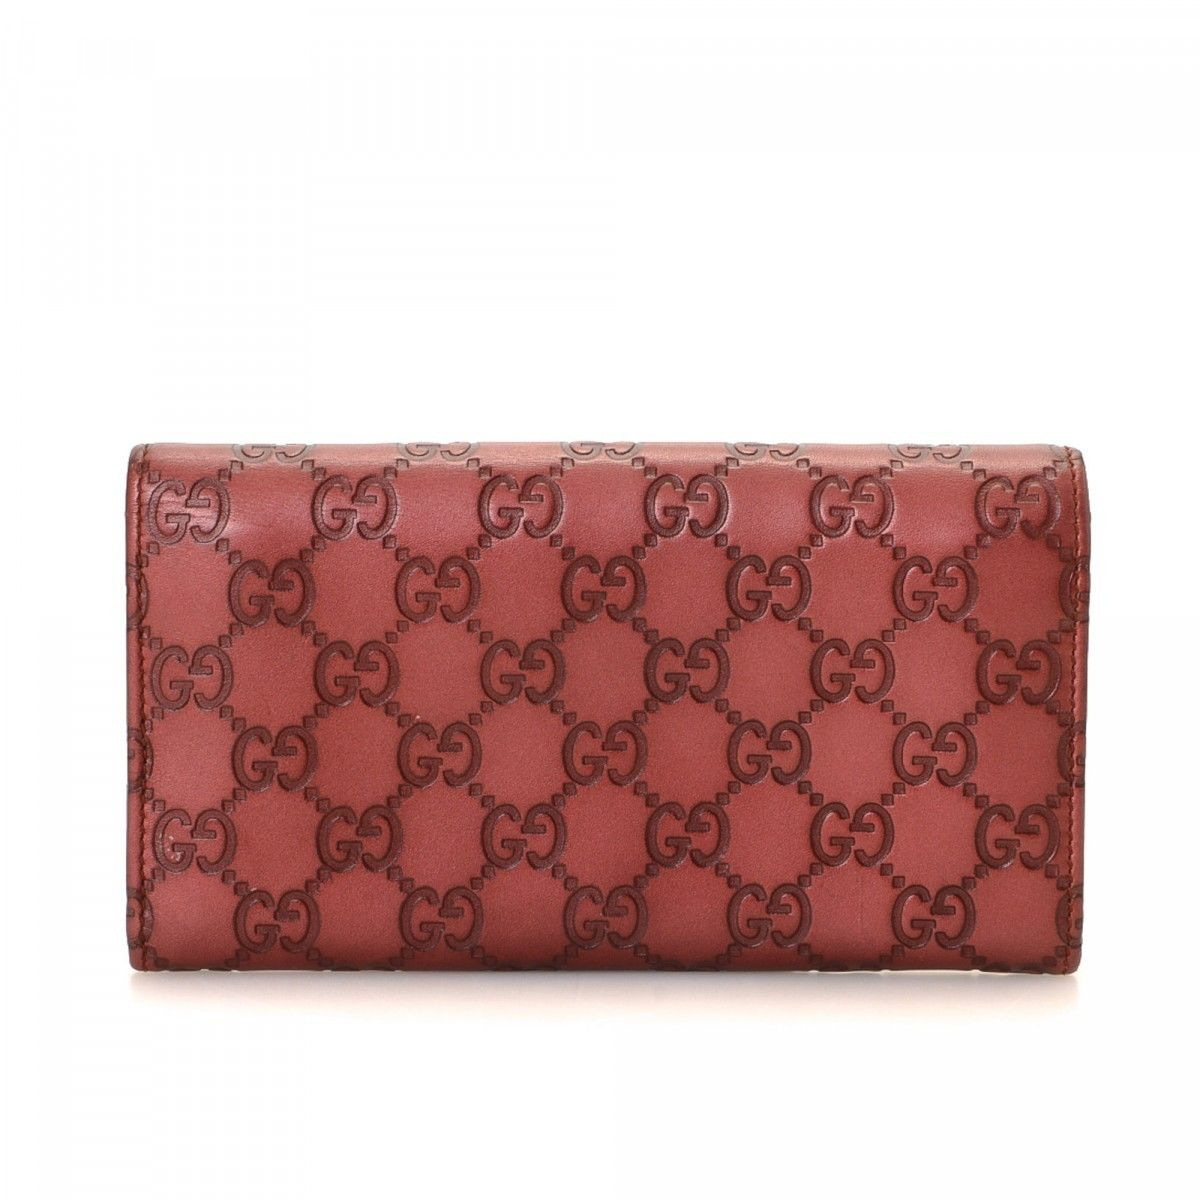 gucci keychain wallet. gucci guccissima wallet keychain p